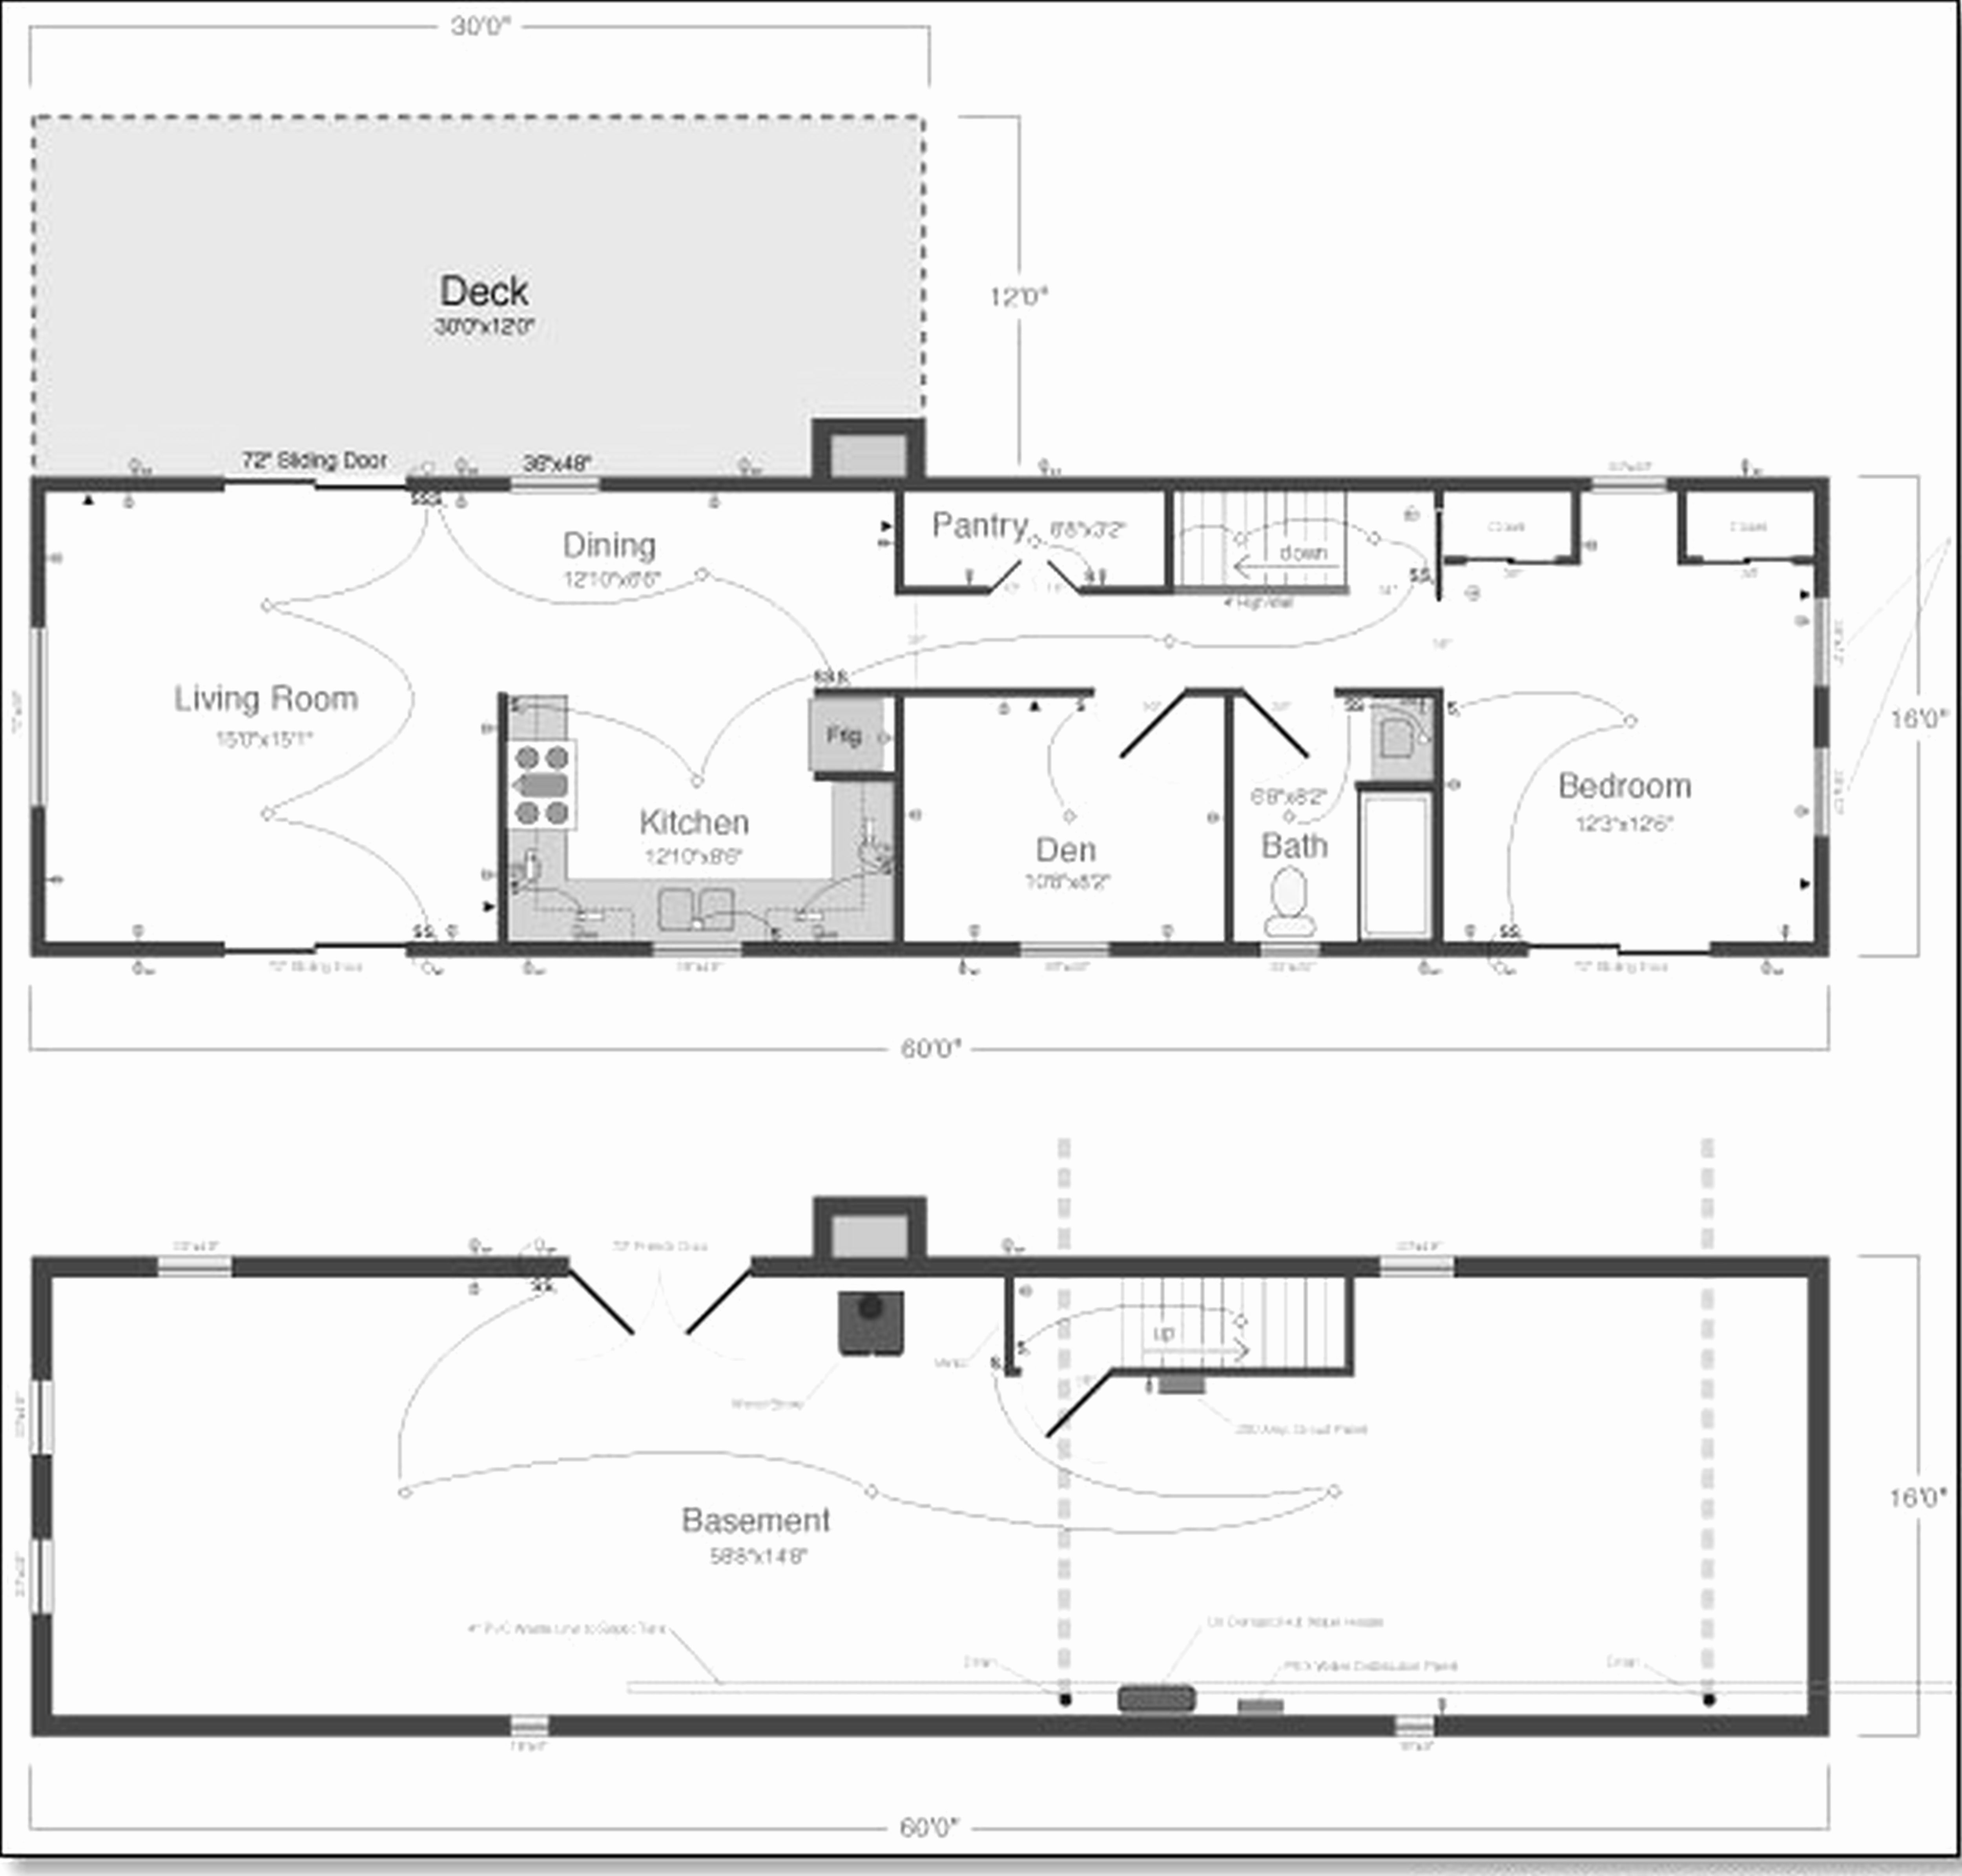 modern small house plans and design simple architecture home ideas rh pinterest com